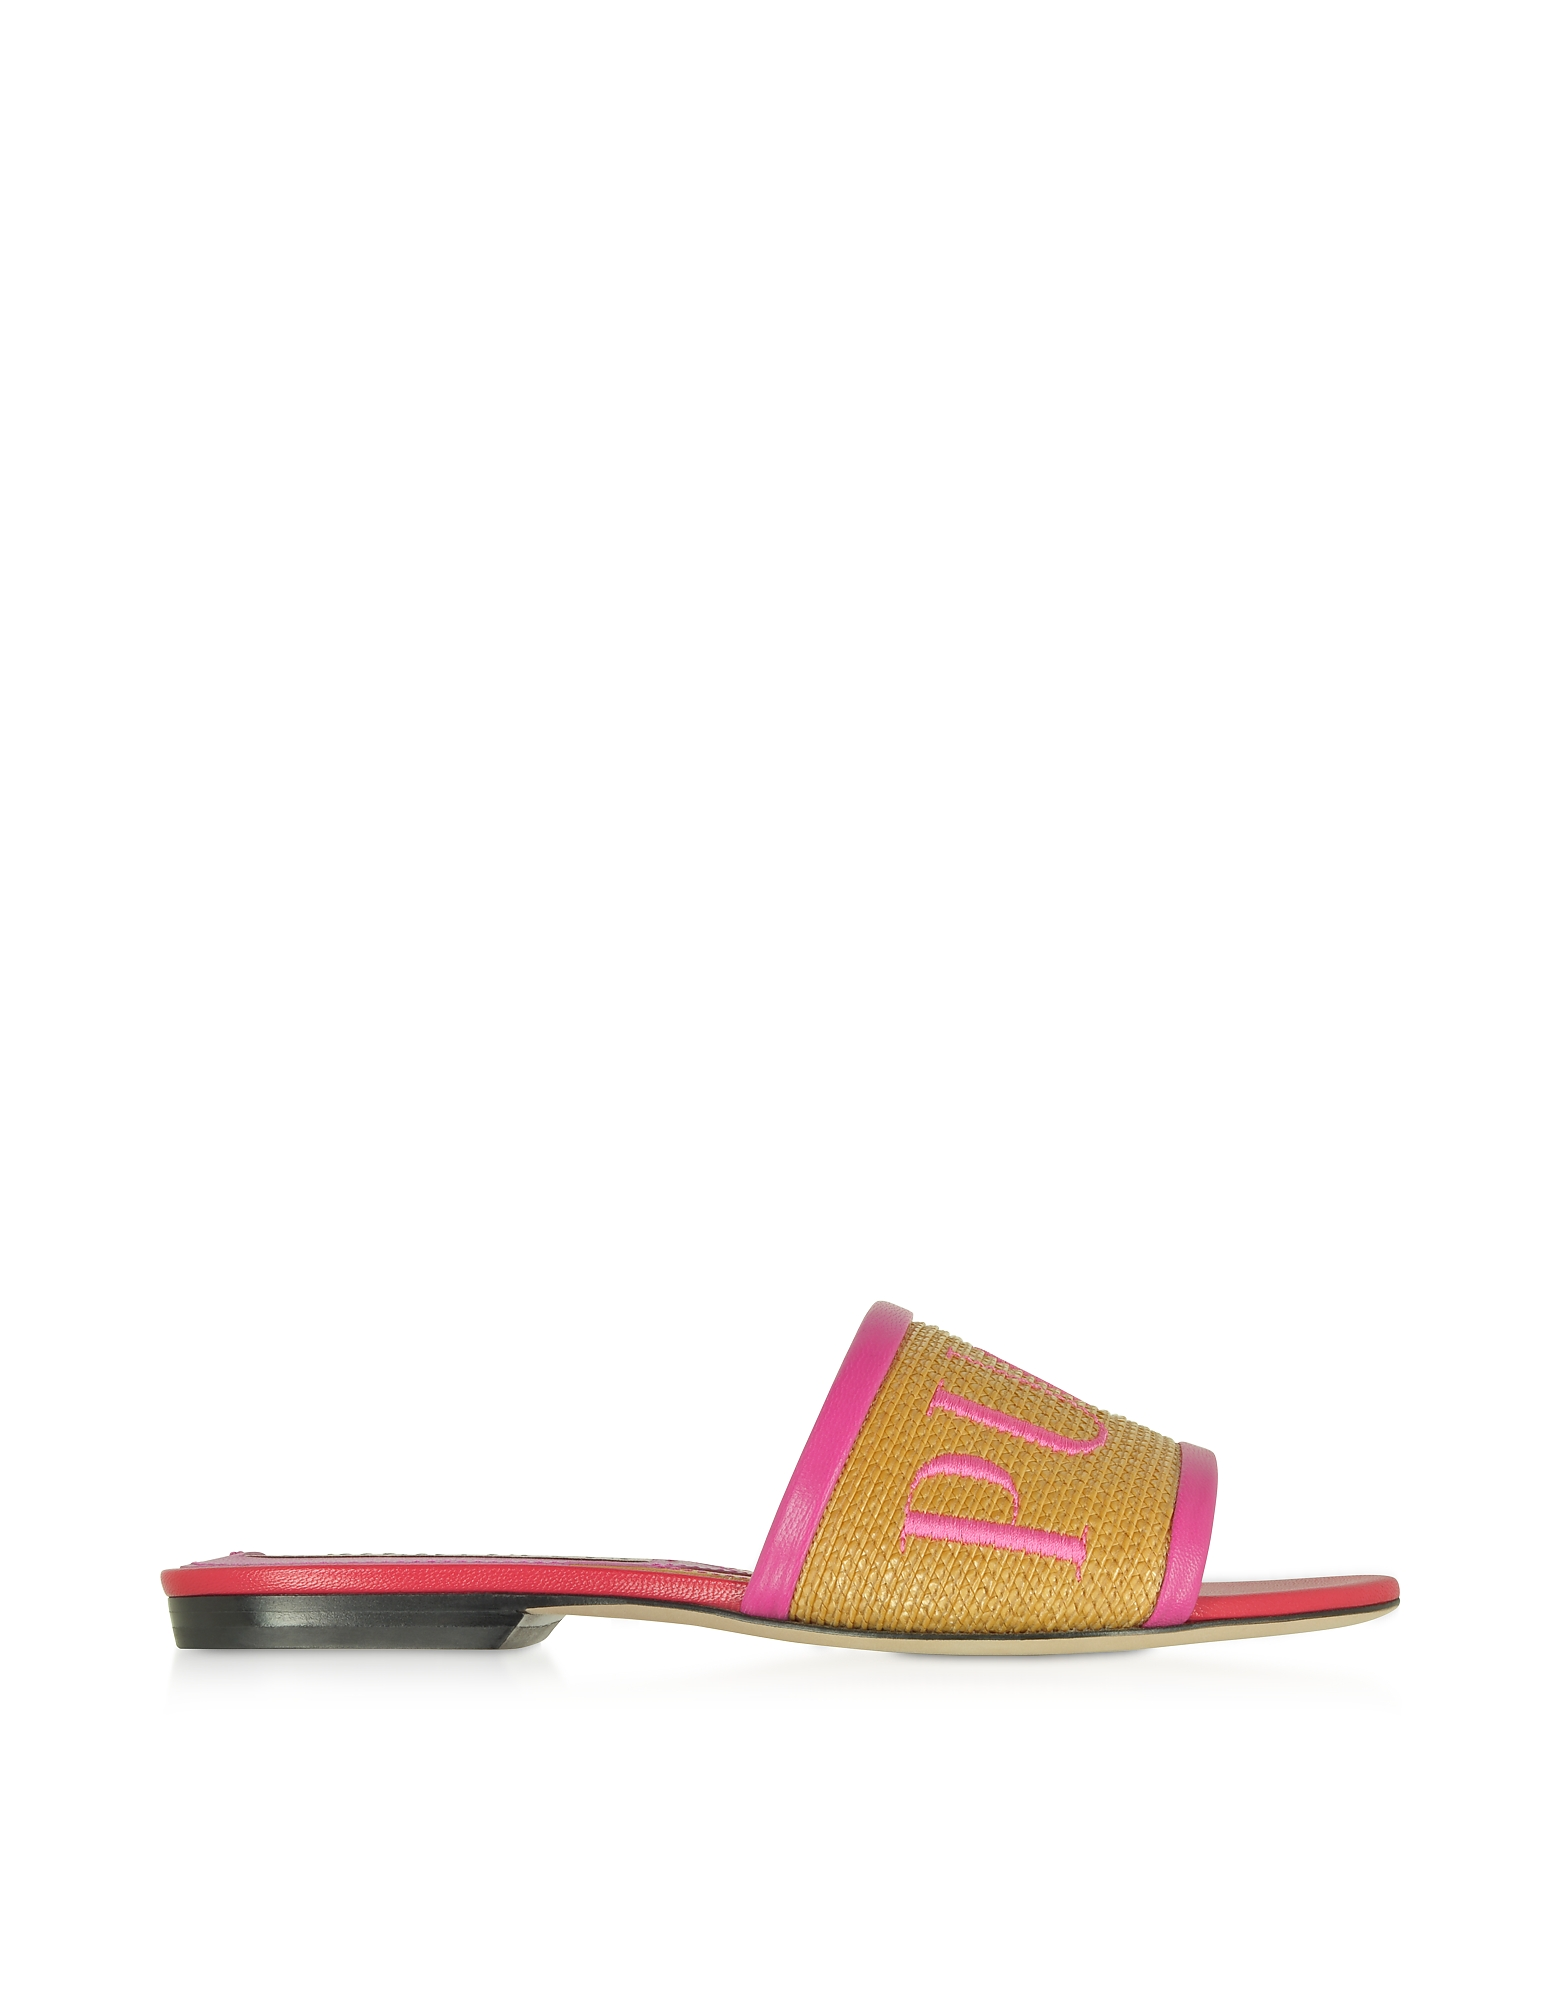 Emilio Pucci Shoes, Raffia & Leather Slipper w/Embroidered Logo